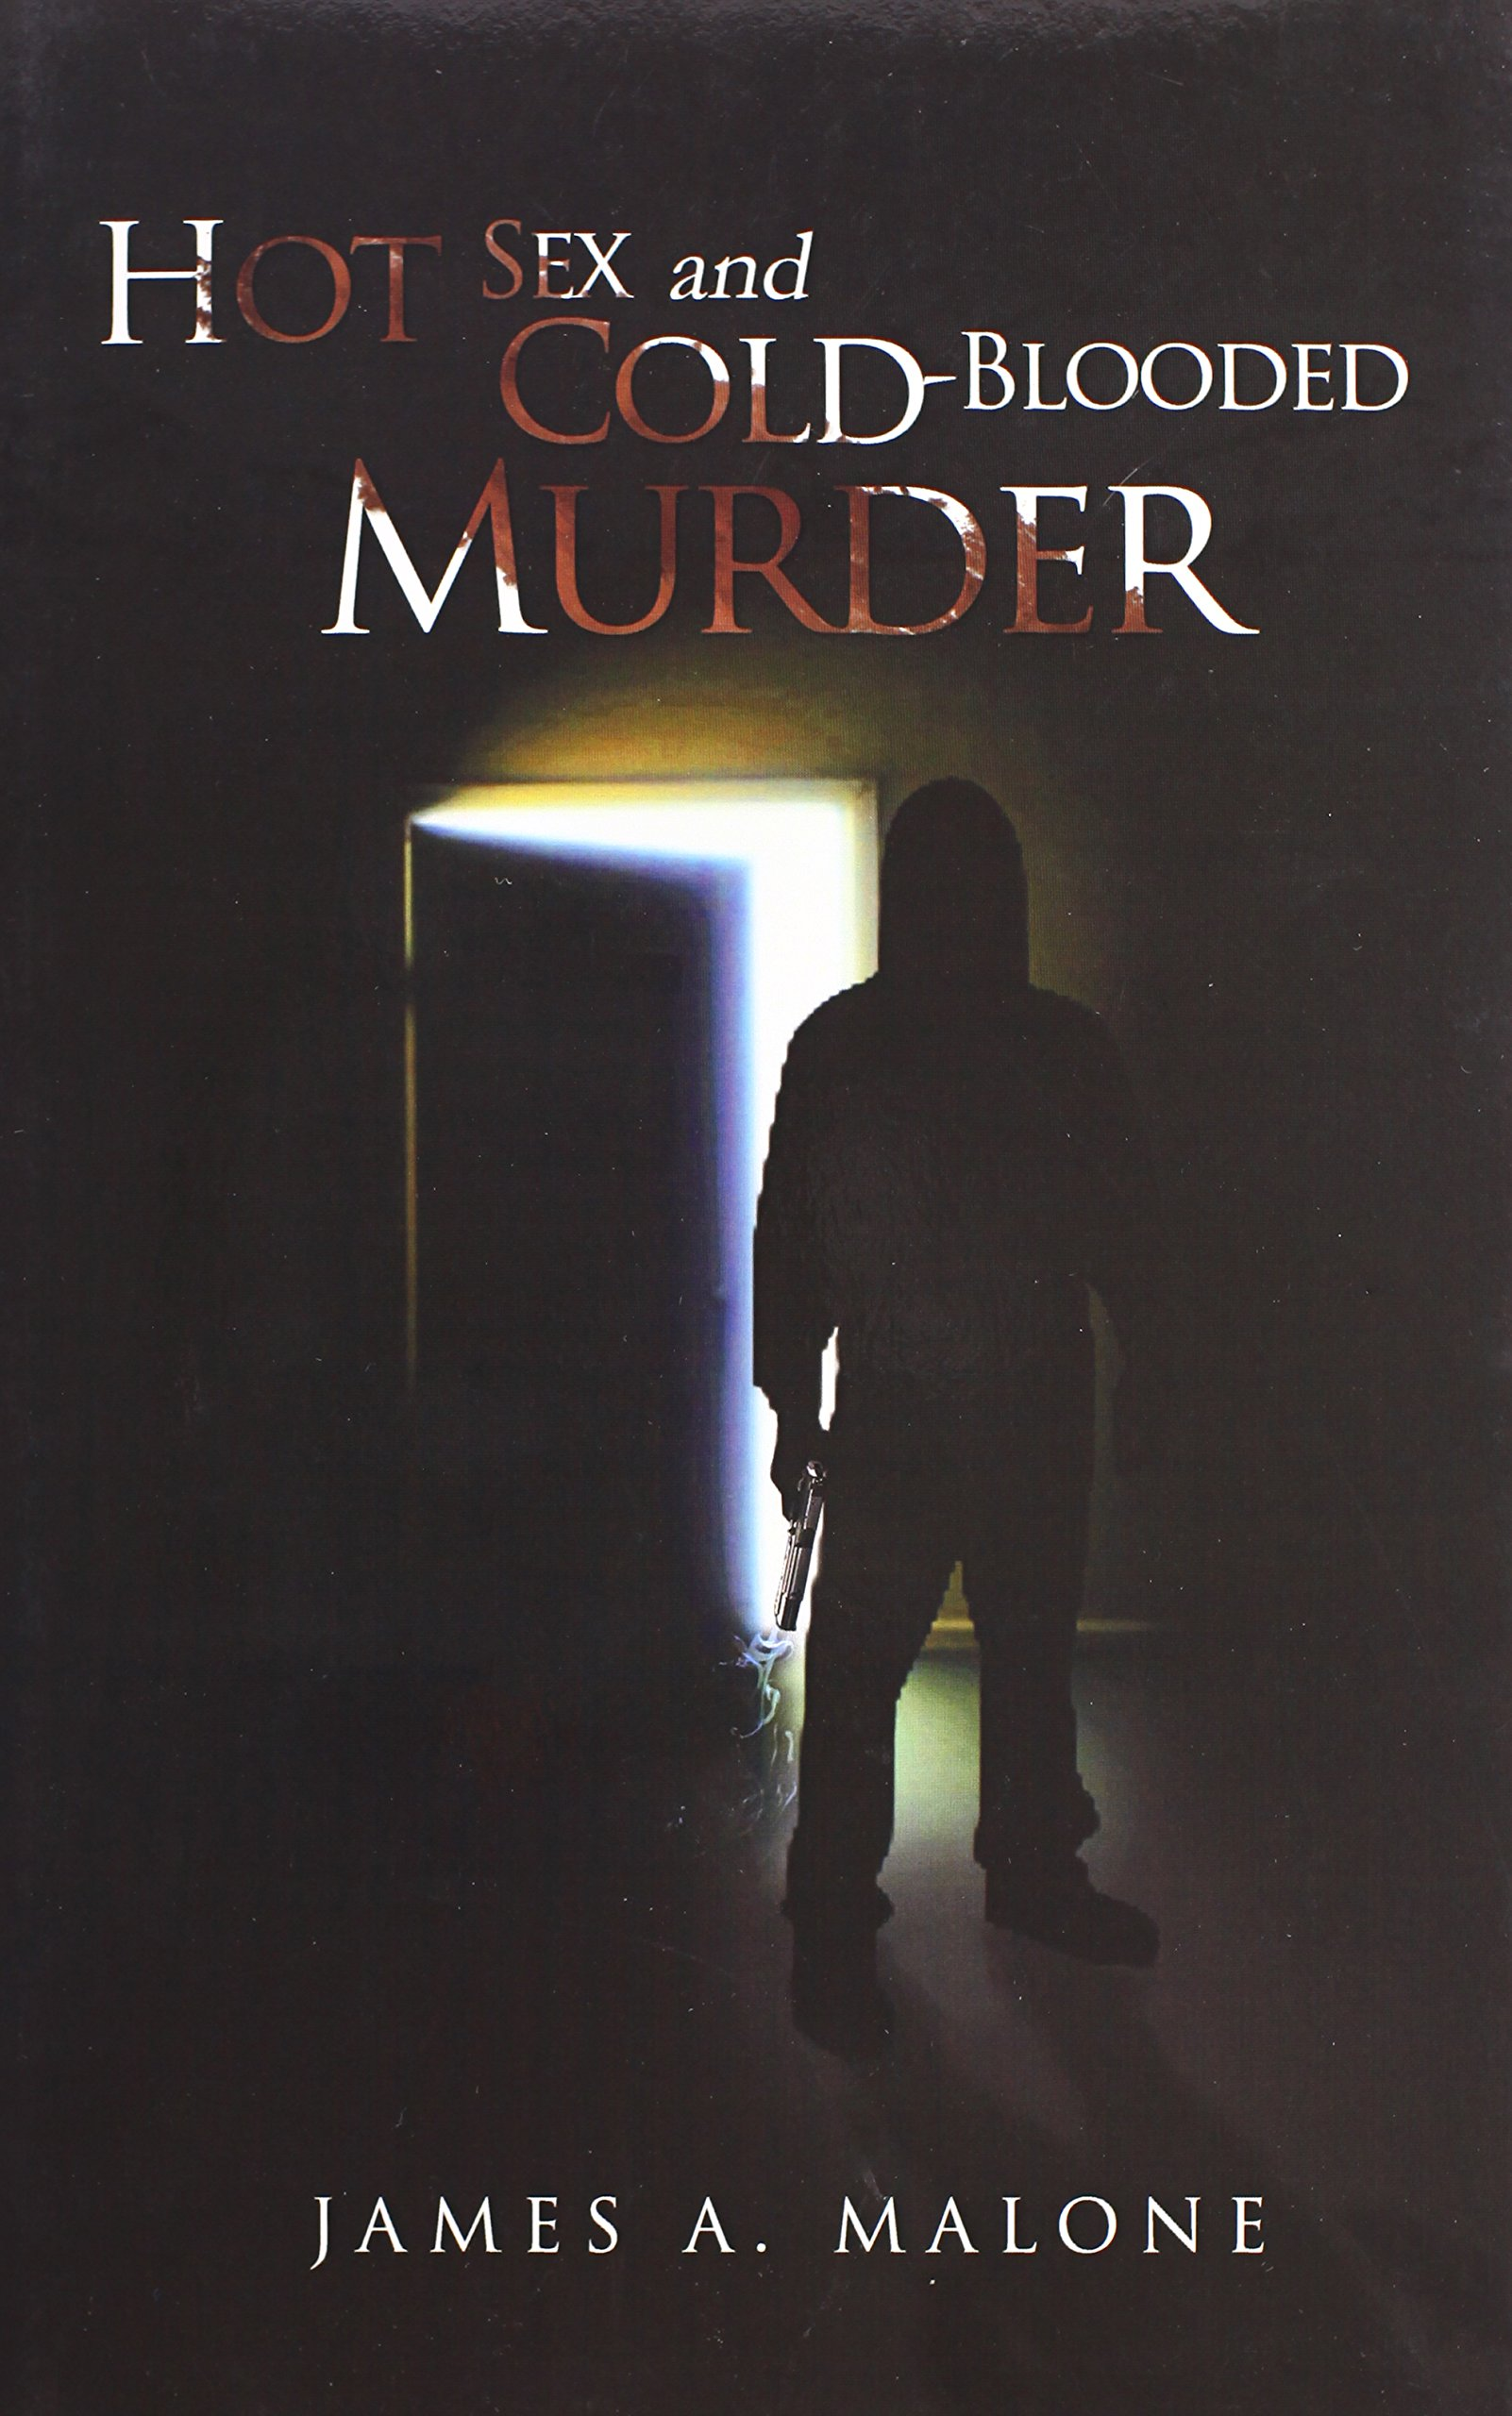 Hot Sex and Cold-Blooded Murder Hardcover – April 29, 2011